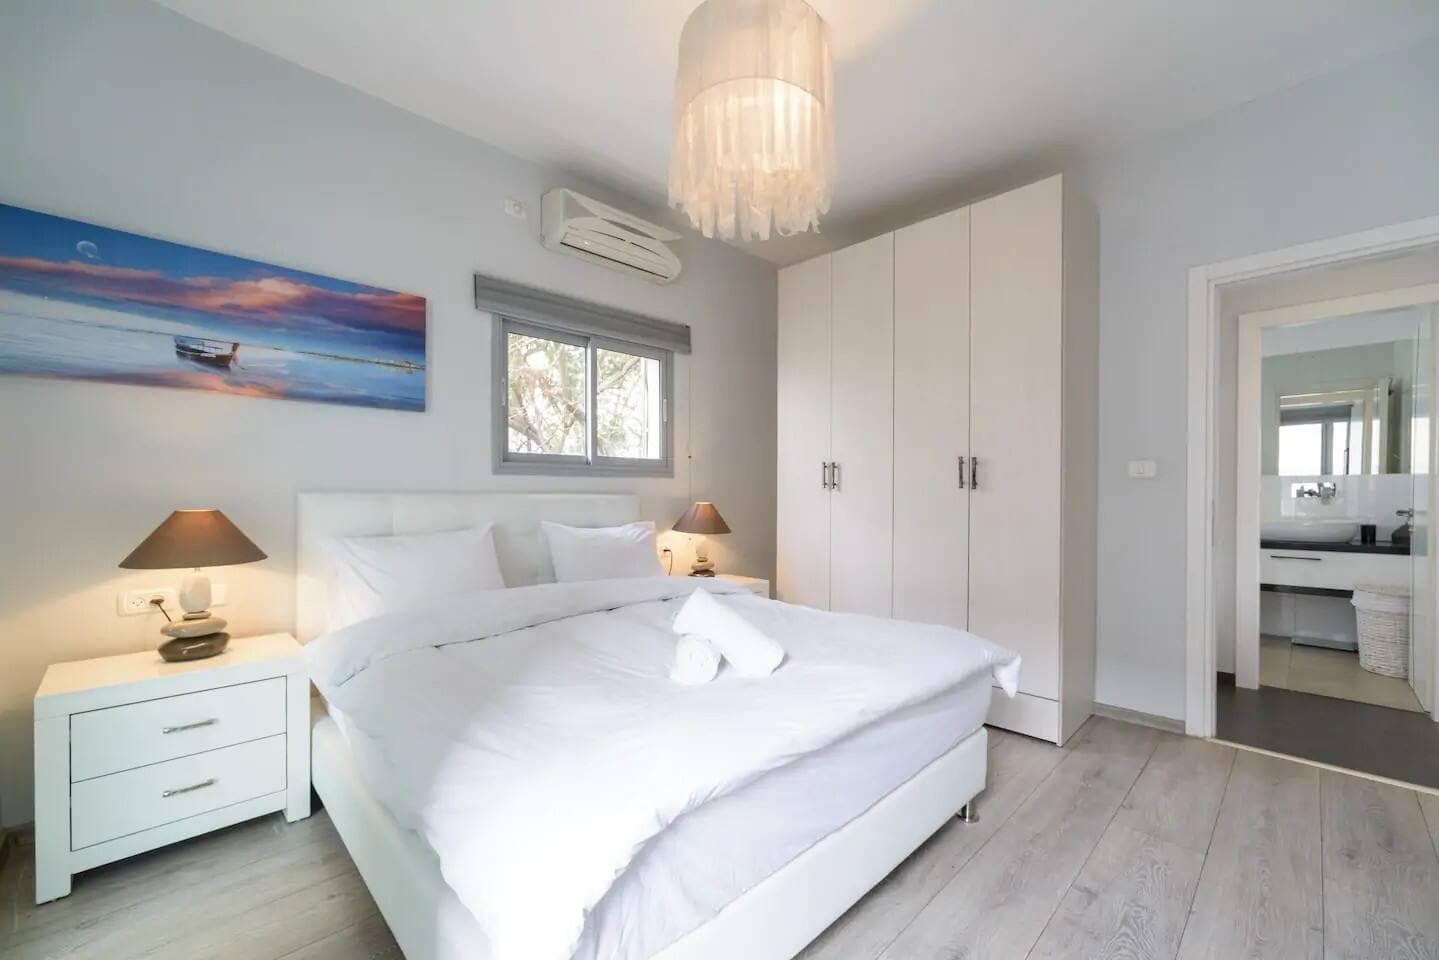 Prime Standards Flat near Dizengoff Centre